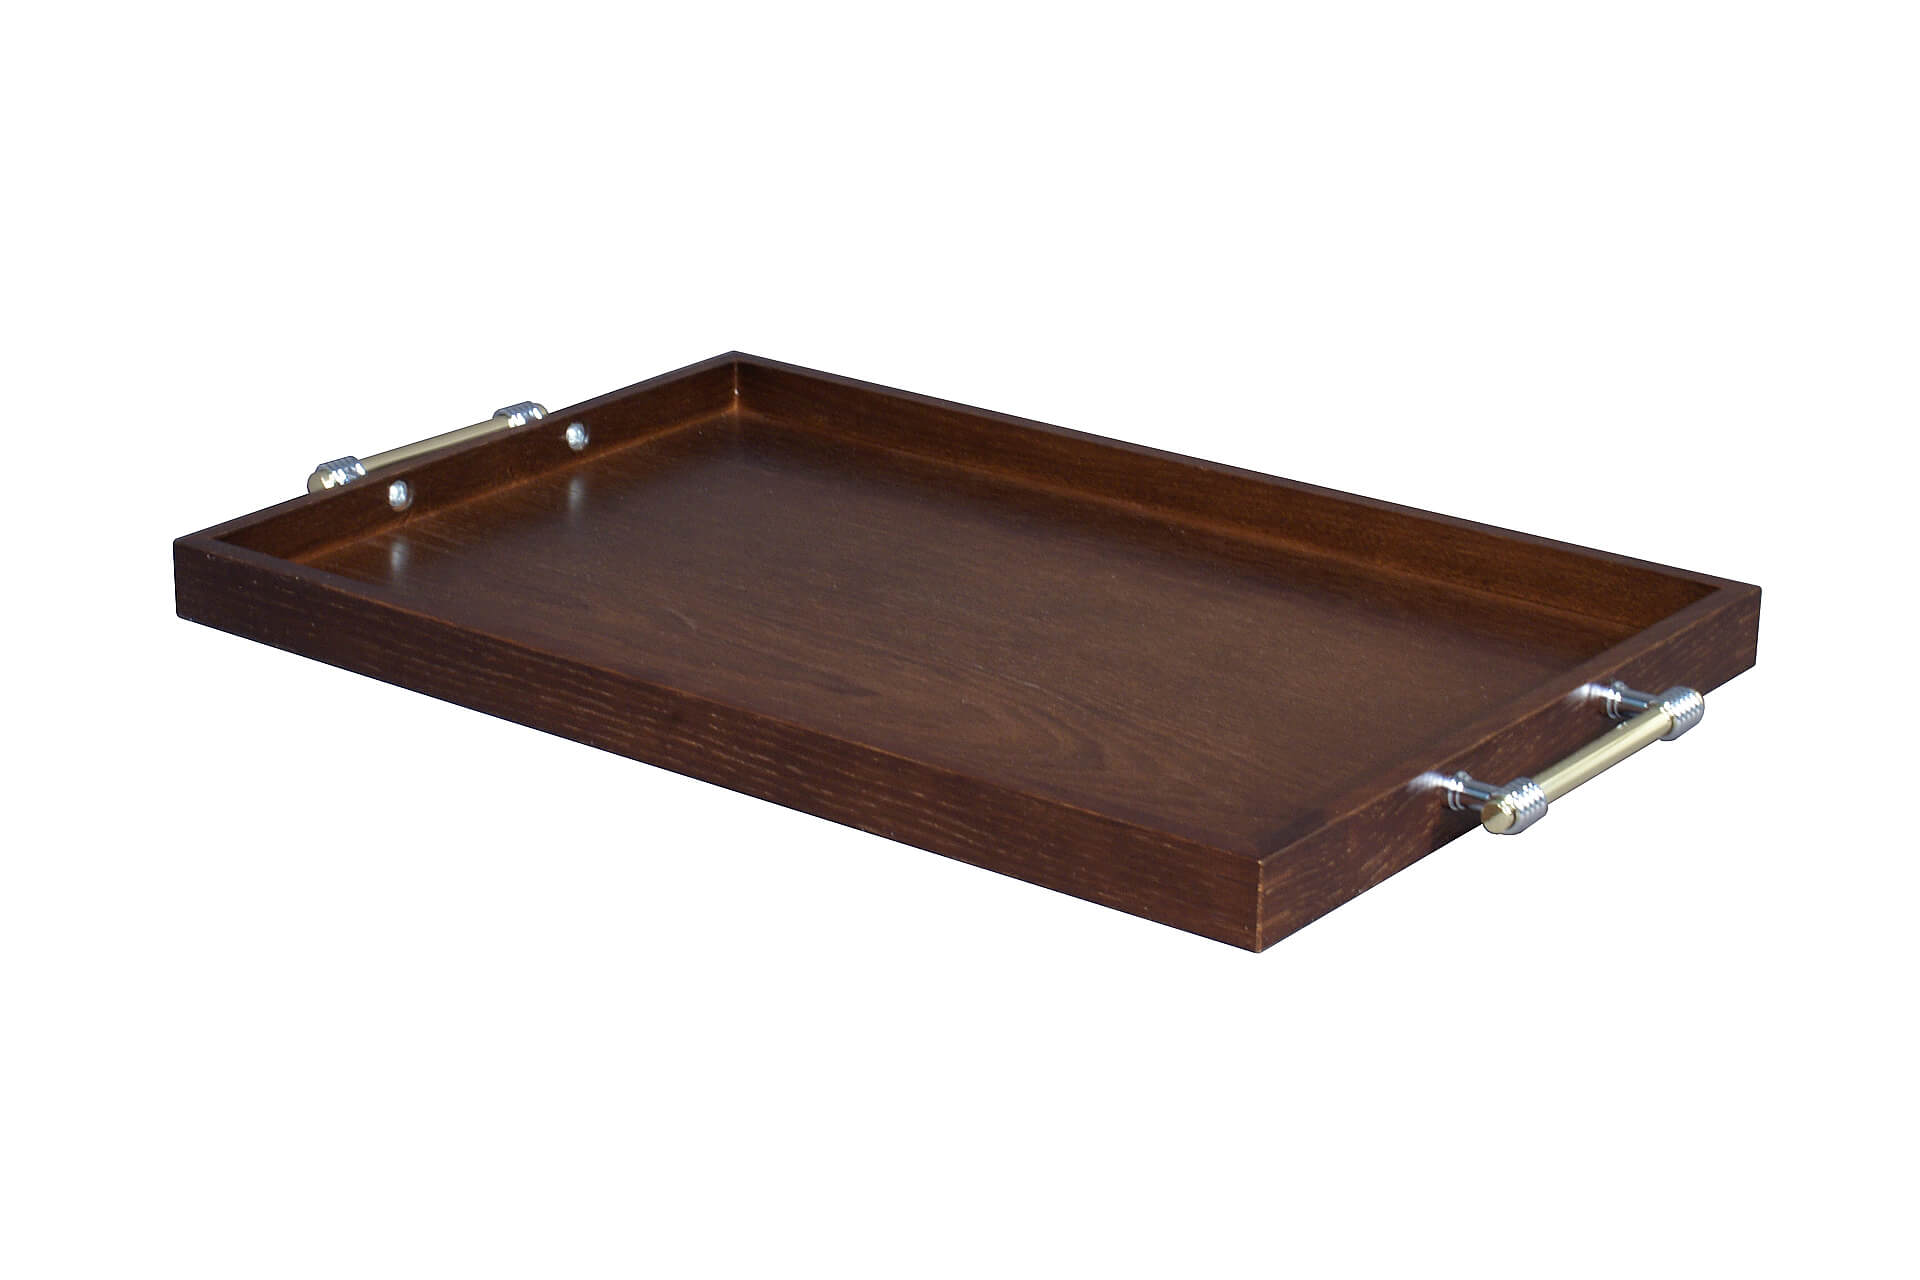 stylish bespoke wooden butler service tray for hotels and restaurants